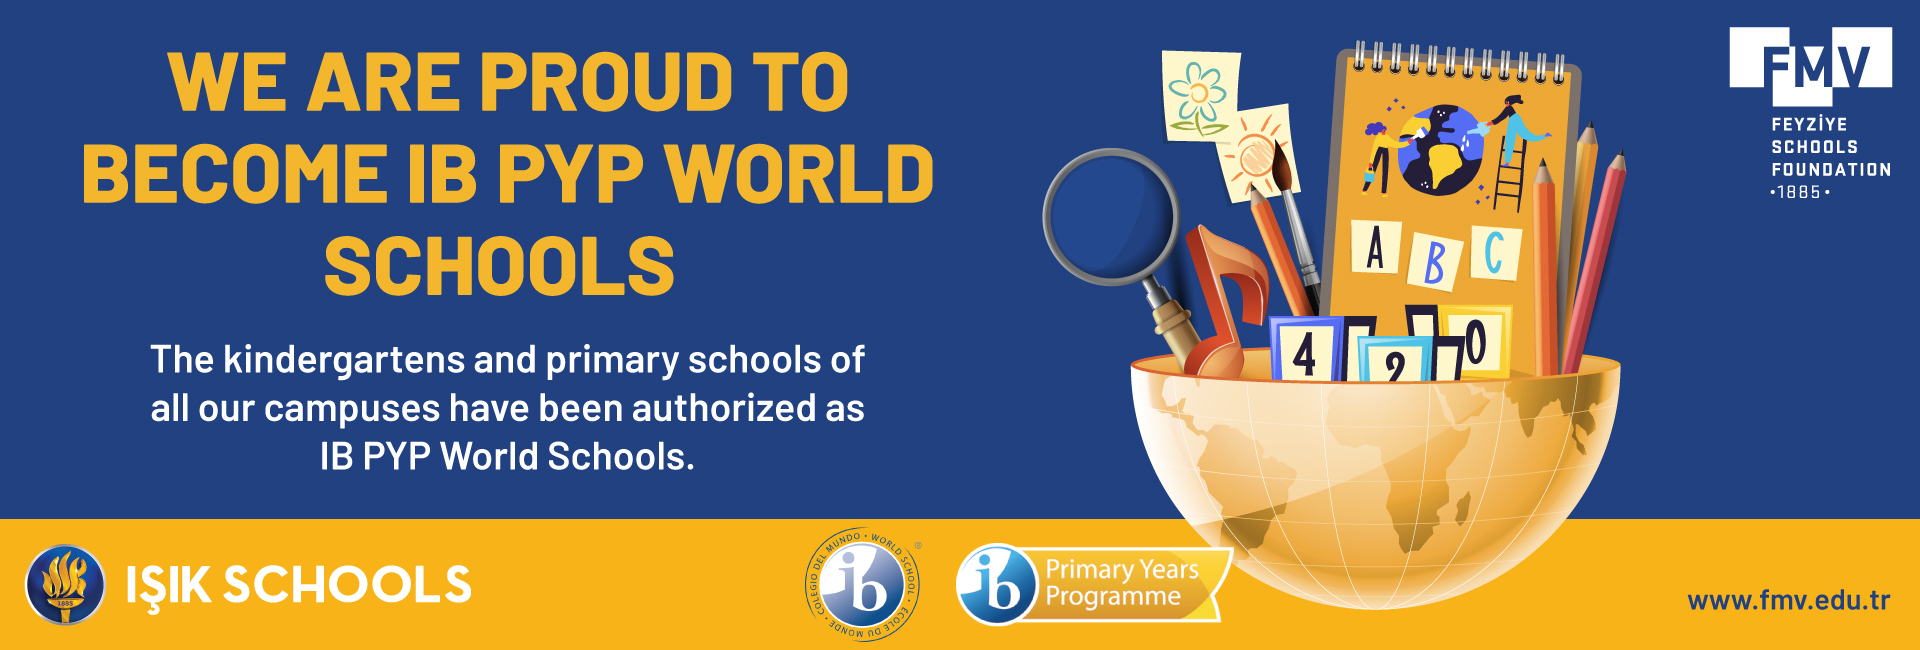 We Are Pround To Become IB PYP World Schools